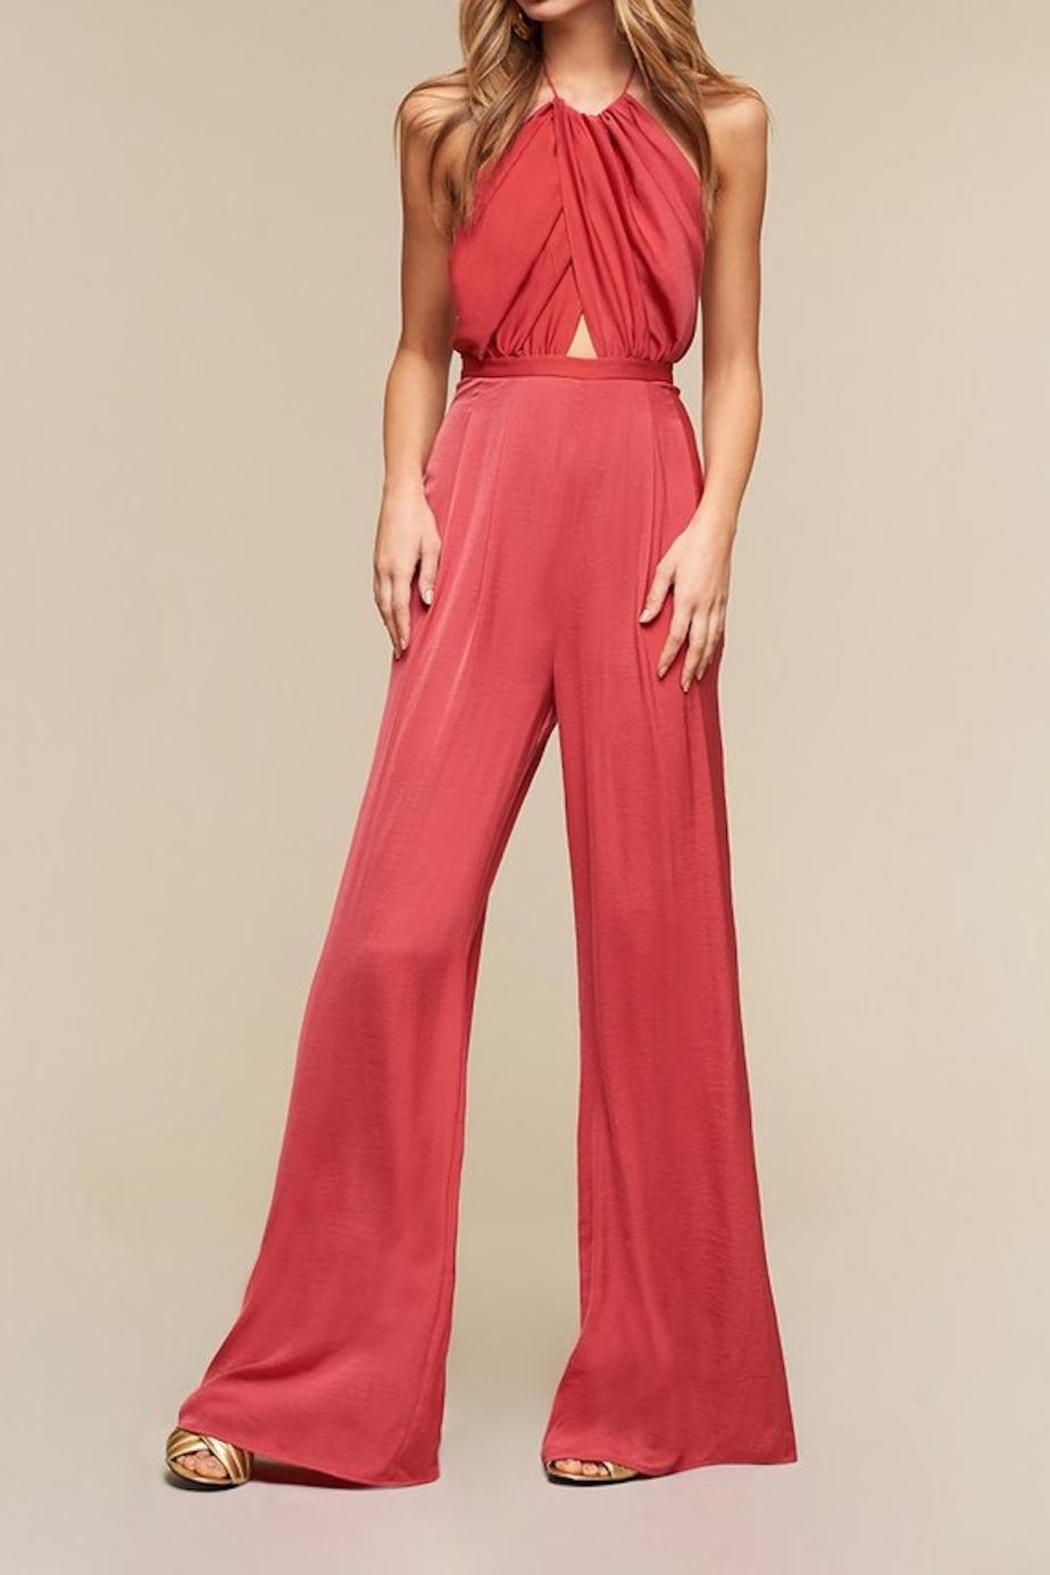 The JetSet Diaries Karisimbi Jumpsuit - Main Image